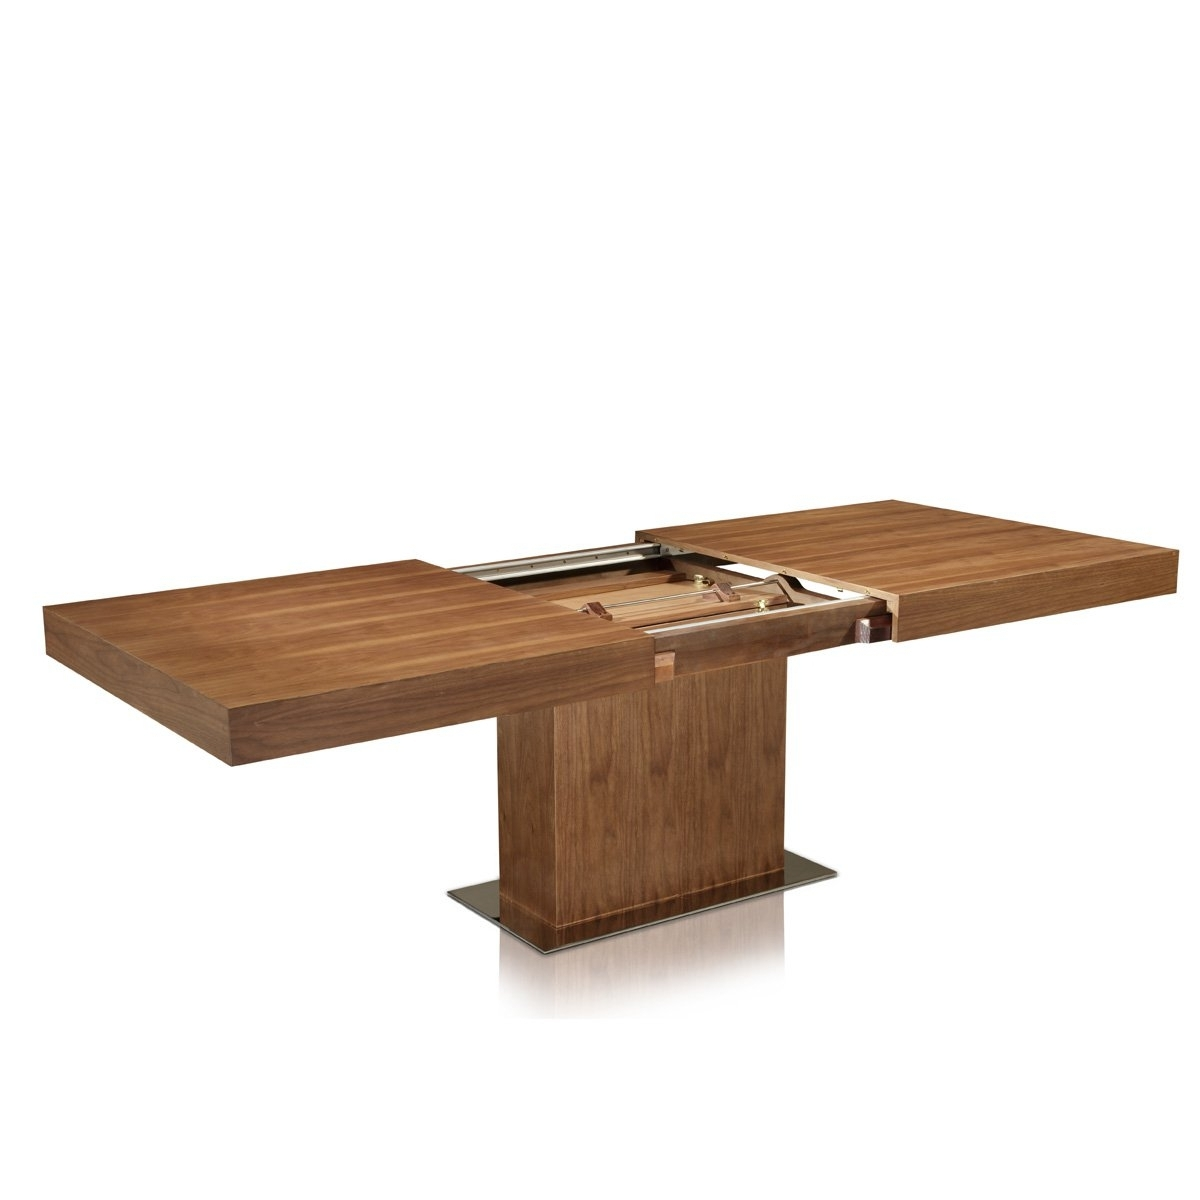 Expandable Wood Dining Table Narrow Extendable Dining Table 2017 With Regard To Famous Square Extendable Dining Tables (View 4 of 25)